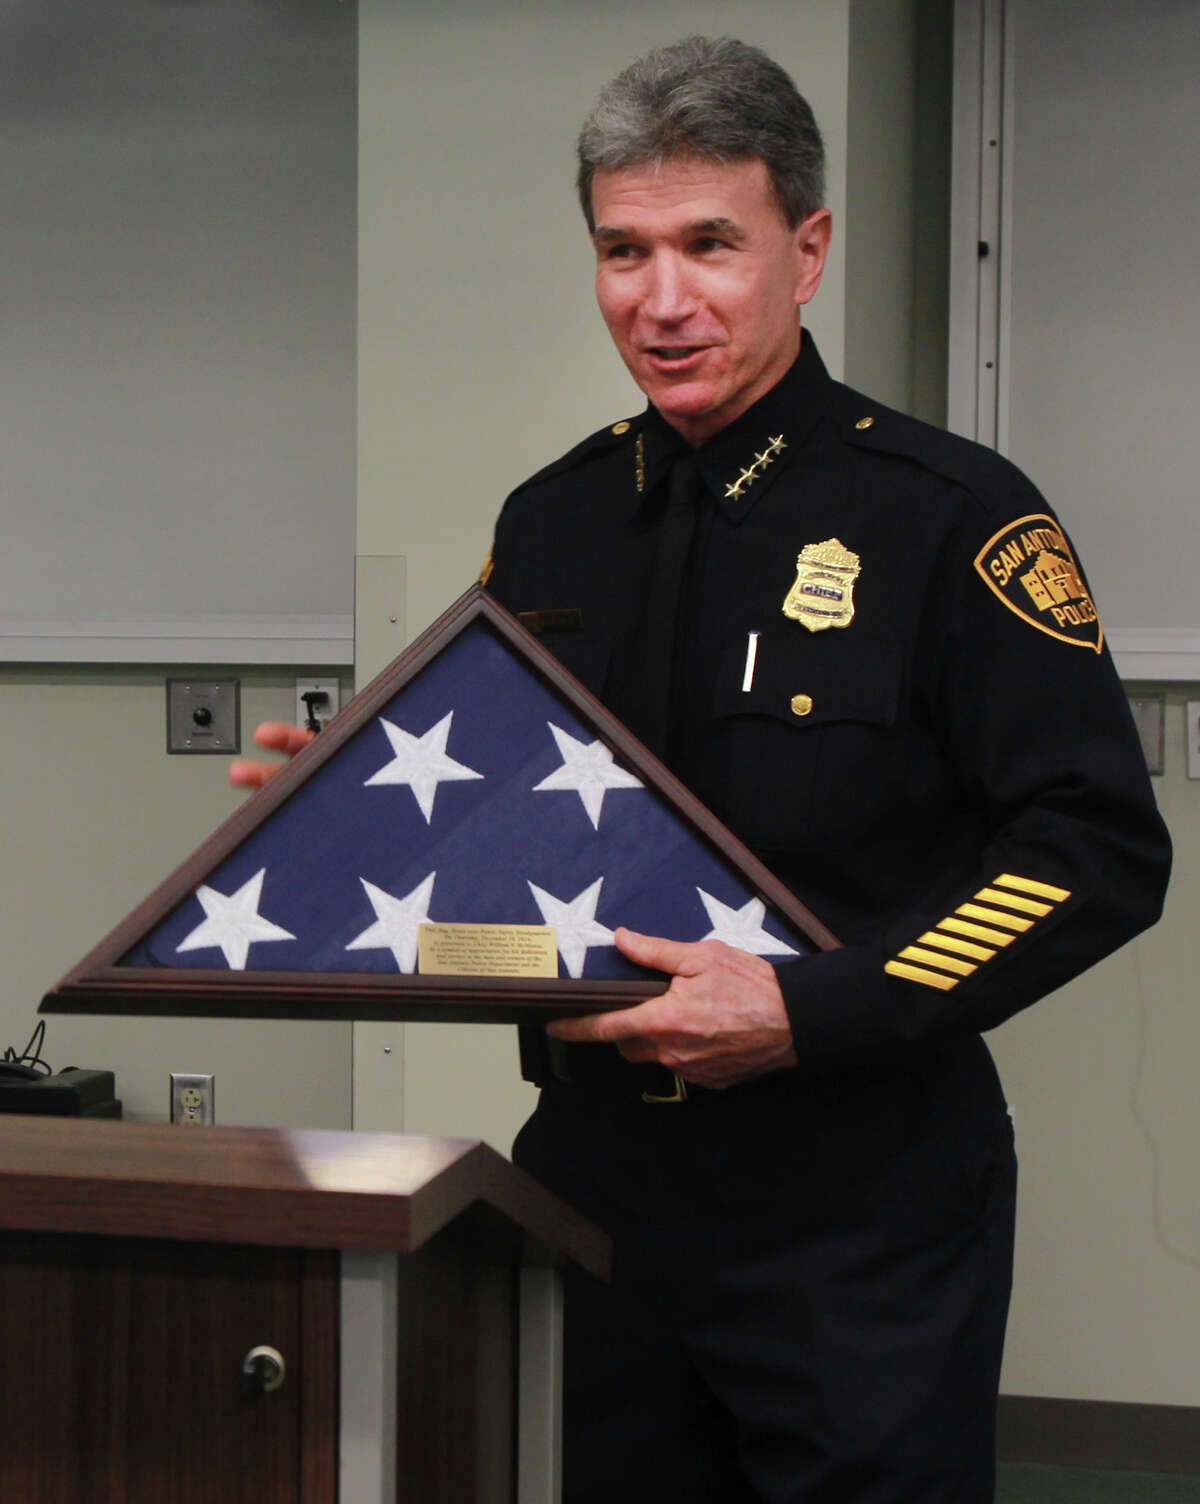 San Antonio Police Chief William McManus holds a keepsake flag that was given to him Thursday December 18, 2014 at a goodbye breakfast held in McManus' honor at the Public Safety Headquarters. McManus is leaving the police department to take a position with City Public Service.